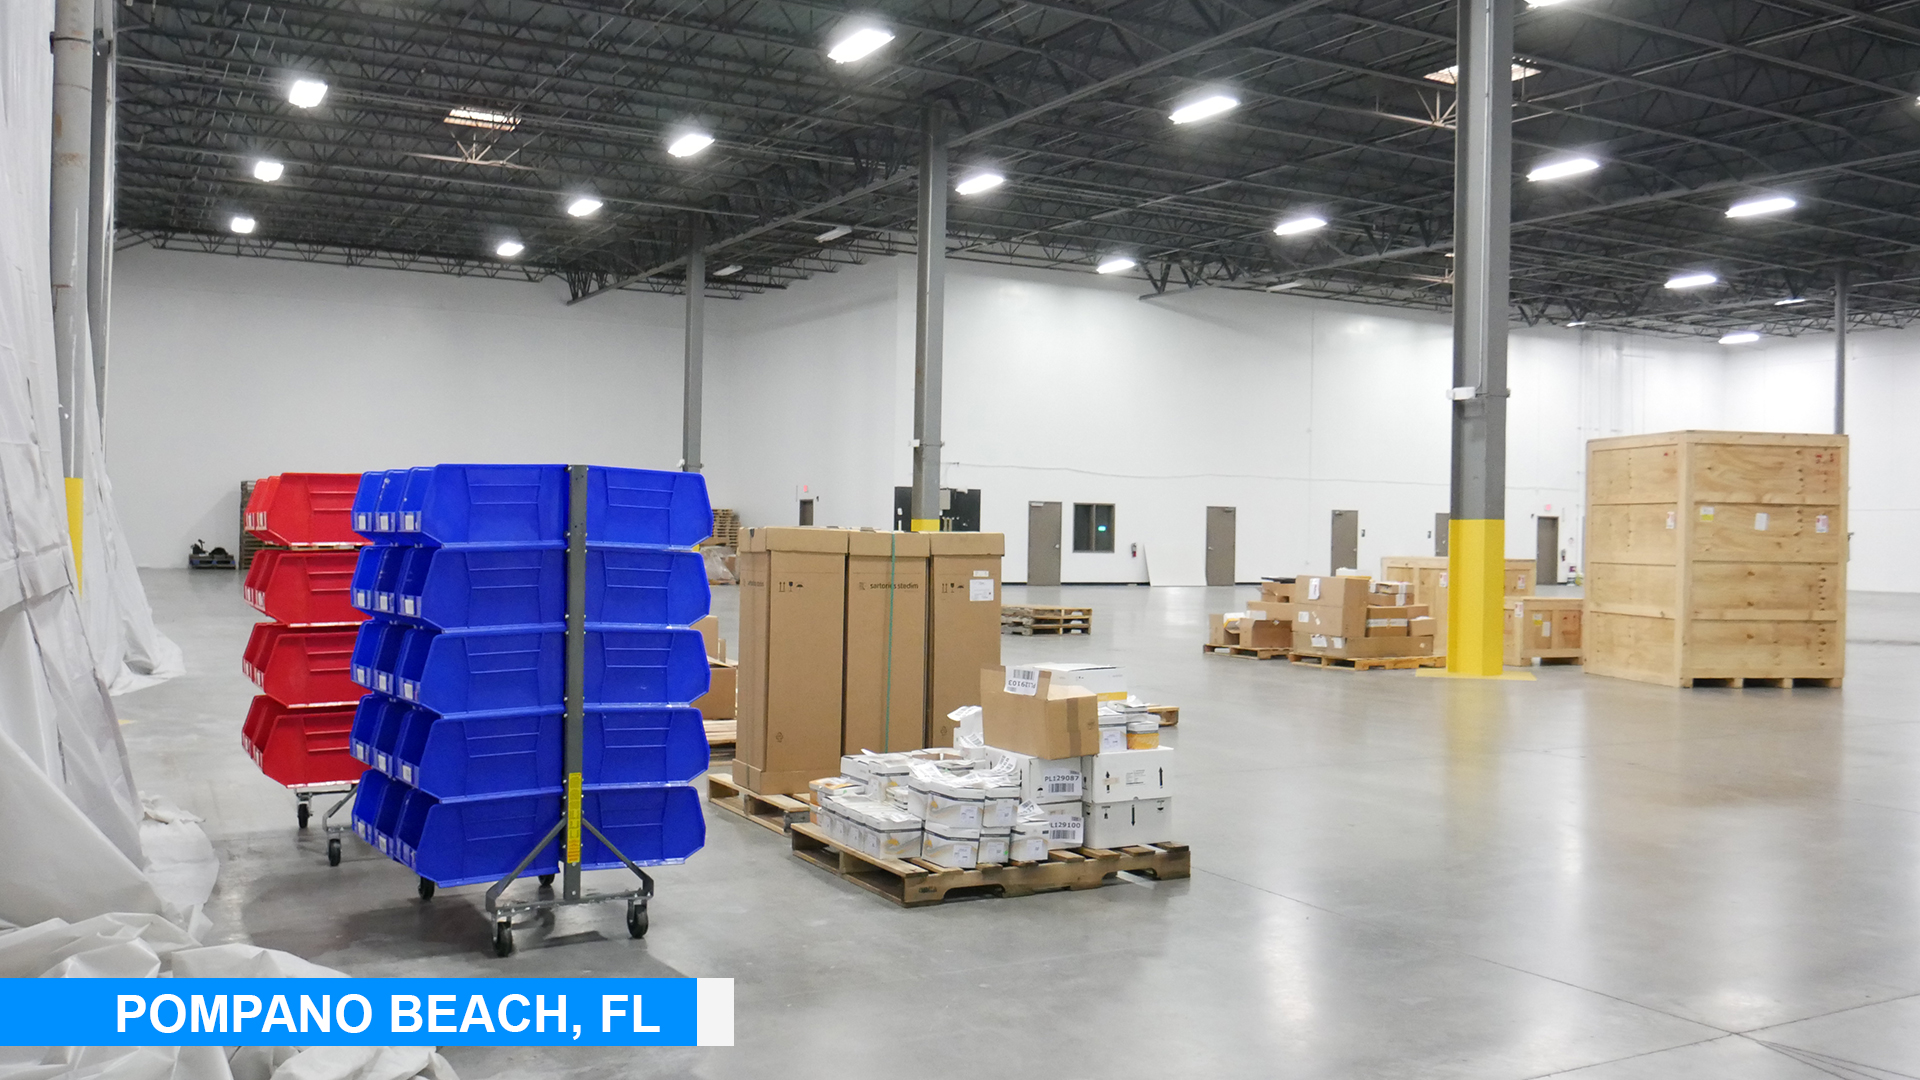 Planning for extended space at Pompano Beach, FL